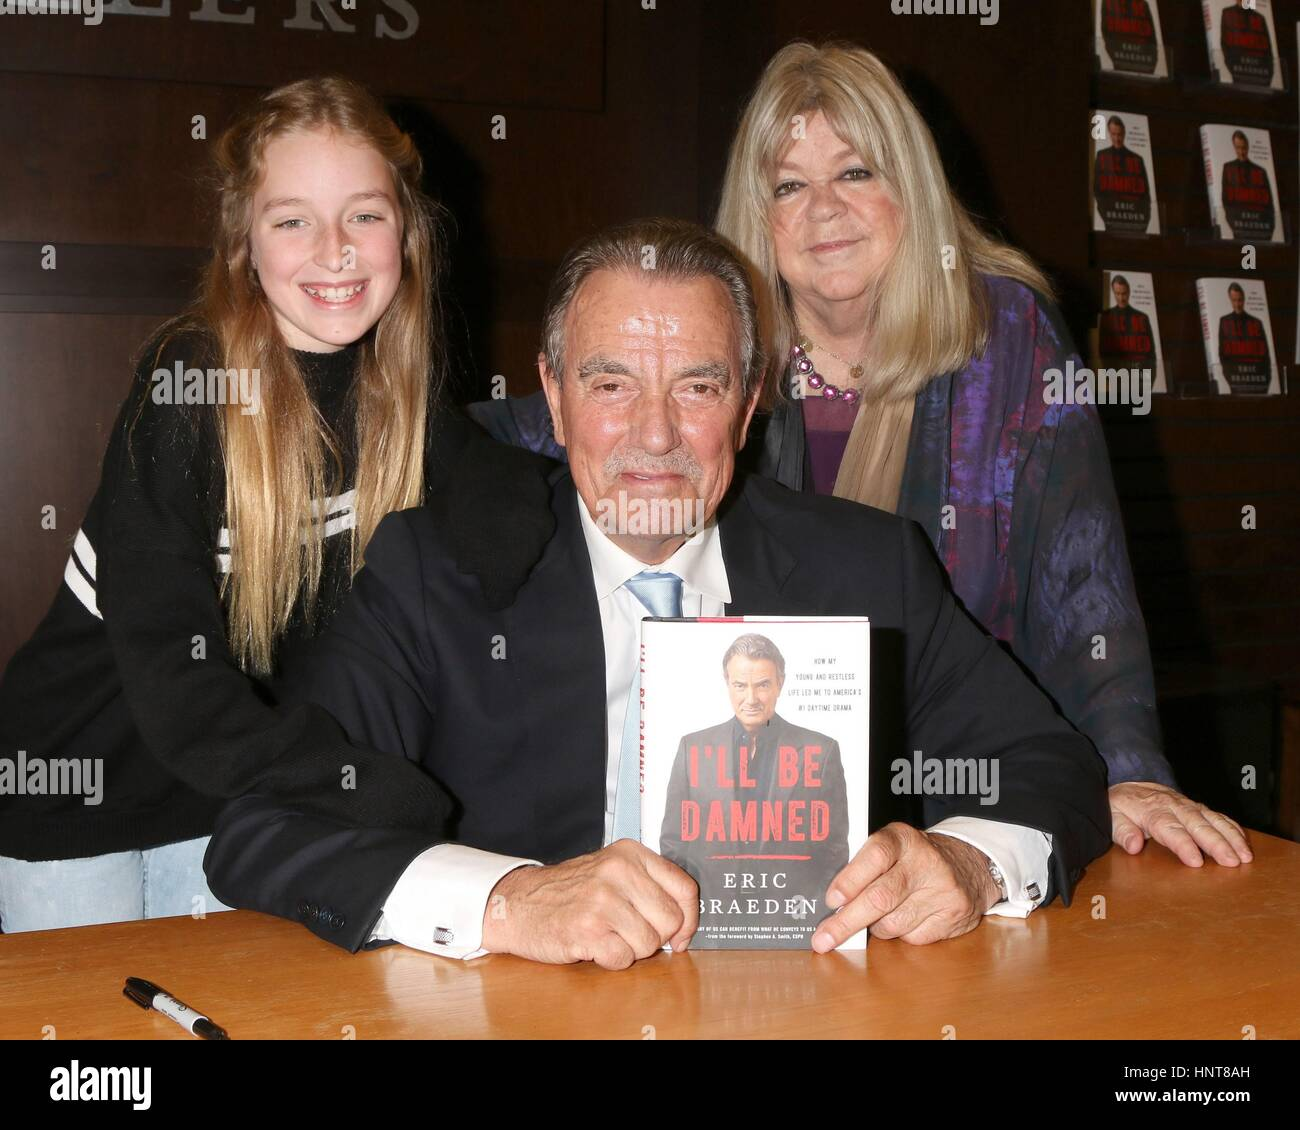 Dale Gudegast High Resolution Stock Photography And Images Alamy Dale russell gudegast is a wife of an actor eric braeden. https www alamy com stock photo los angeles ca usa 13th feb 2017 tatiana gudegast eric braeden dale 133913769 html